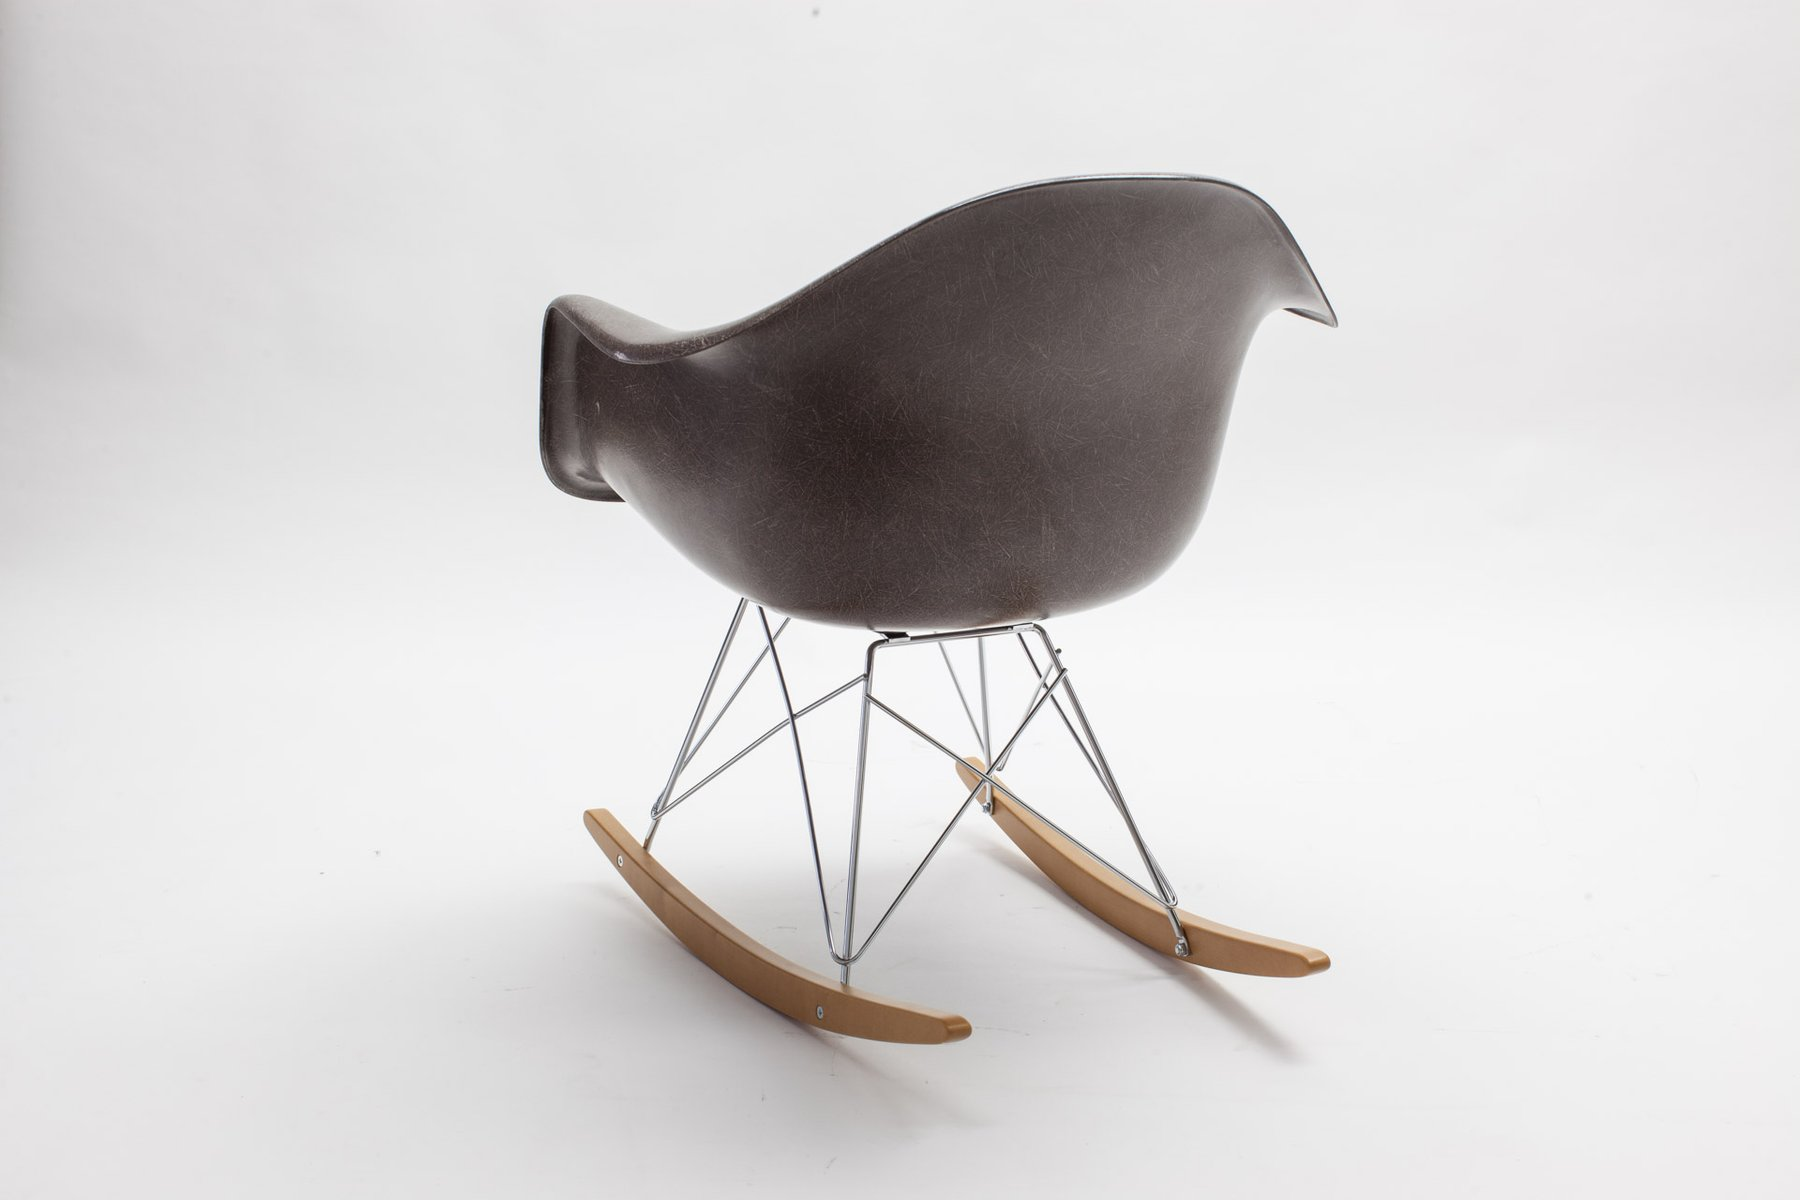 Fiberglass rar rocking chair by charles eames for vitra for Eames replica schaukelstuhl